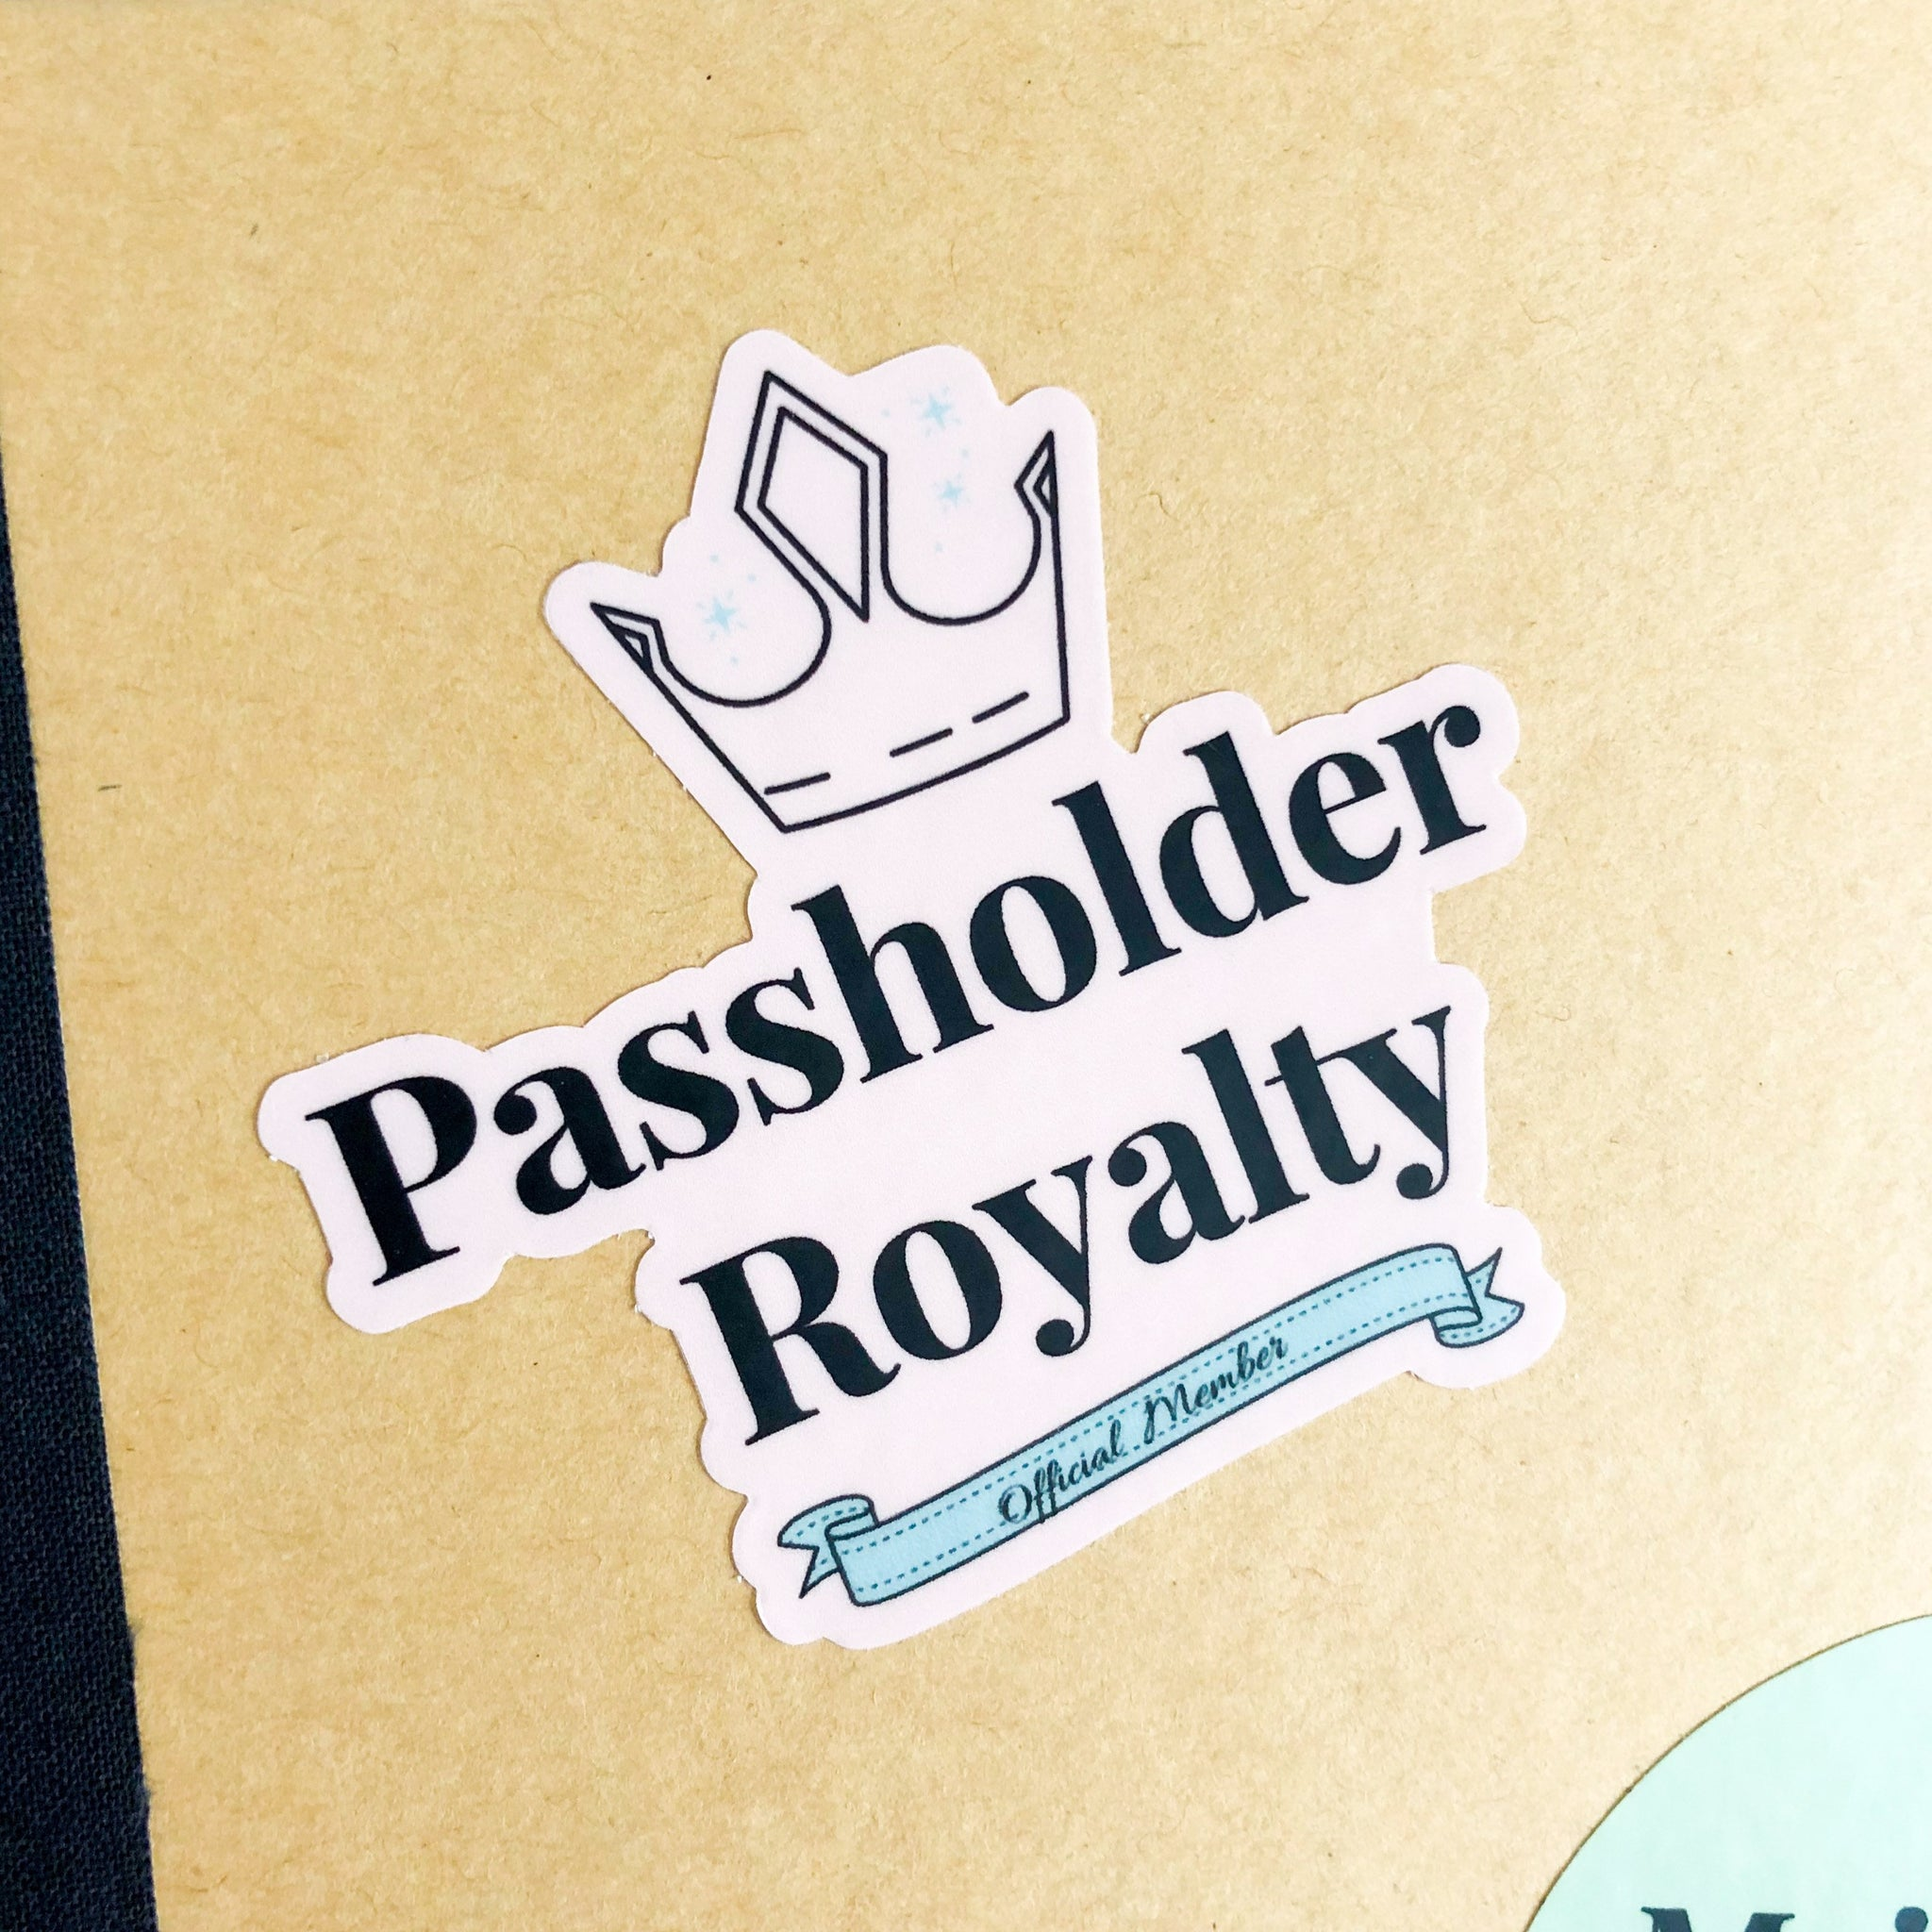 Passholder Royalty